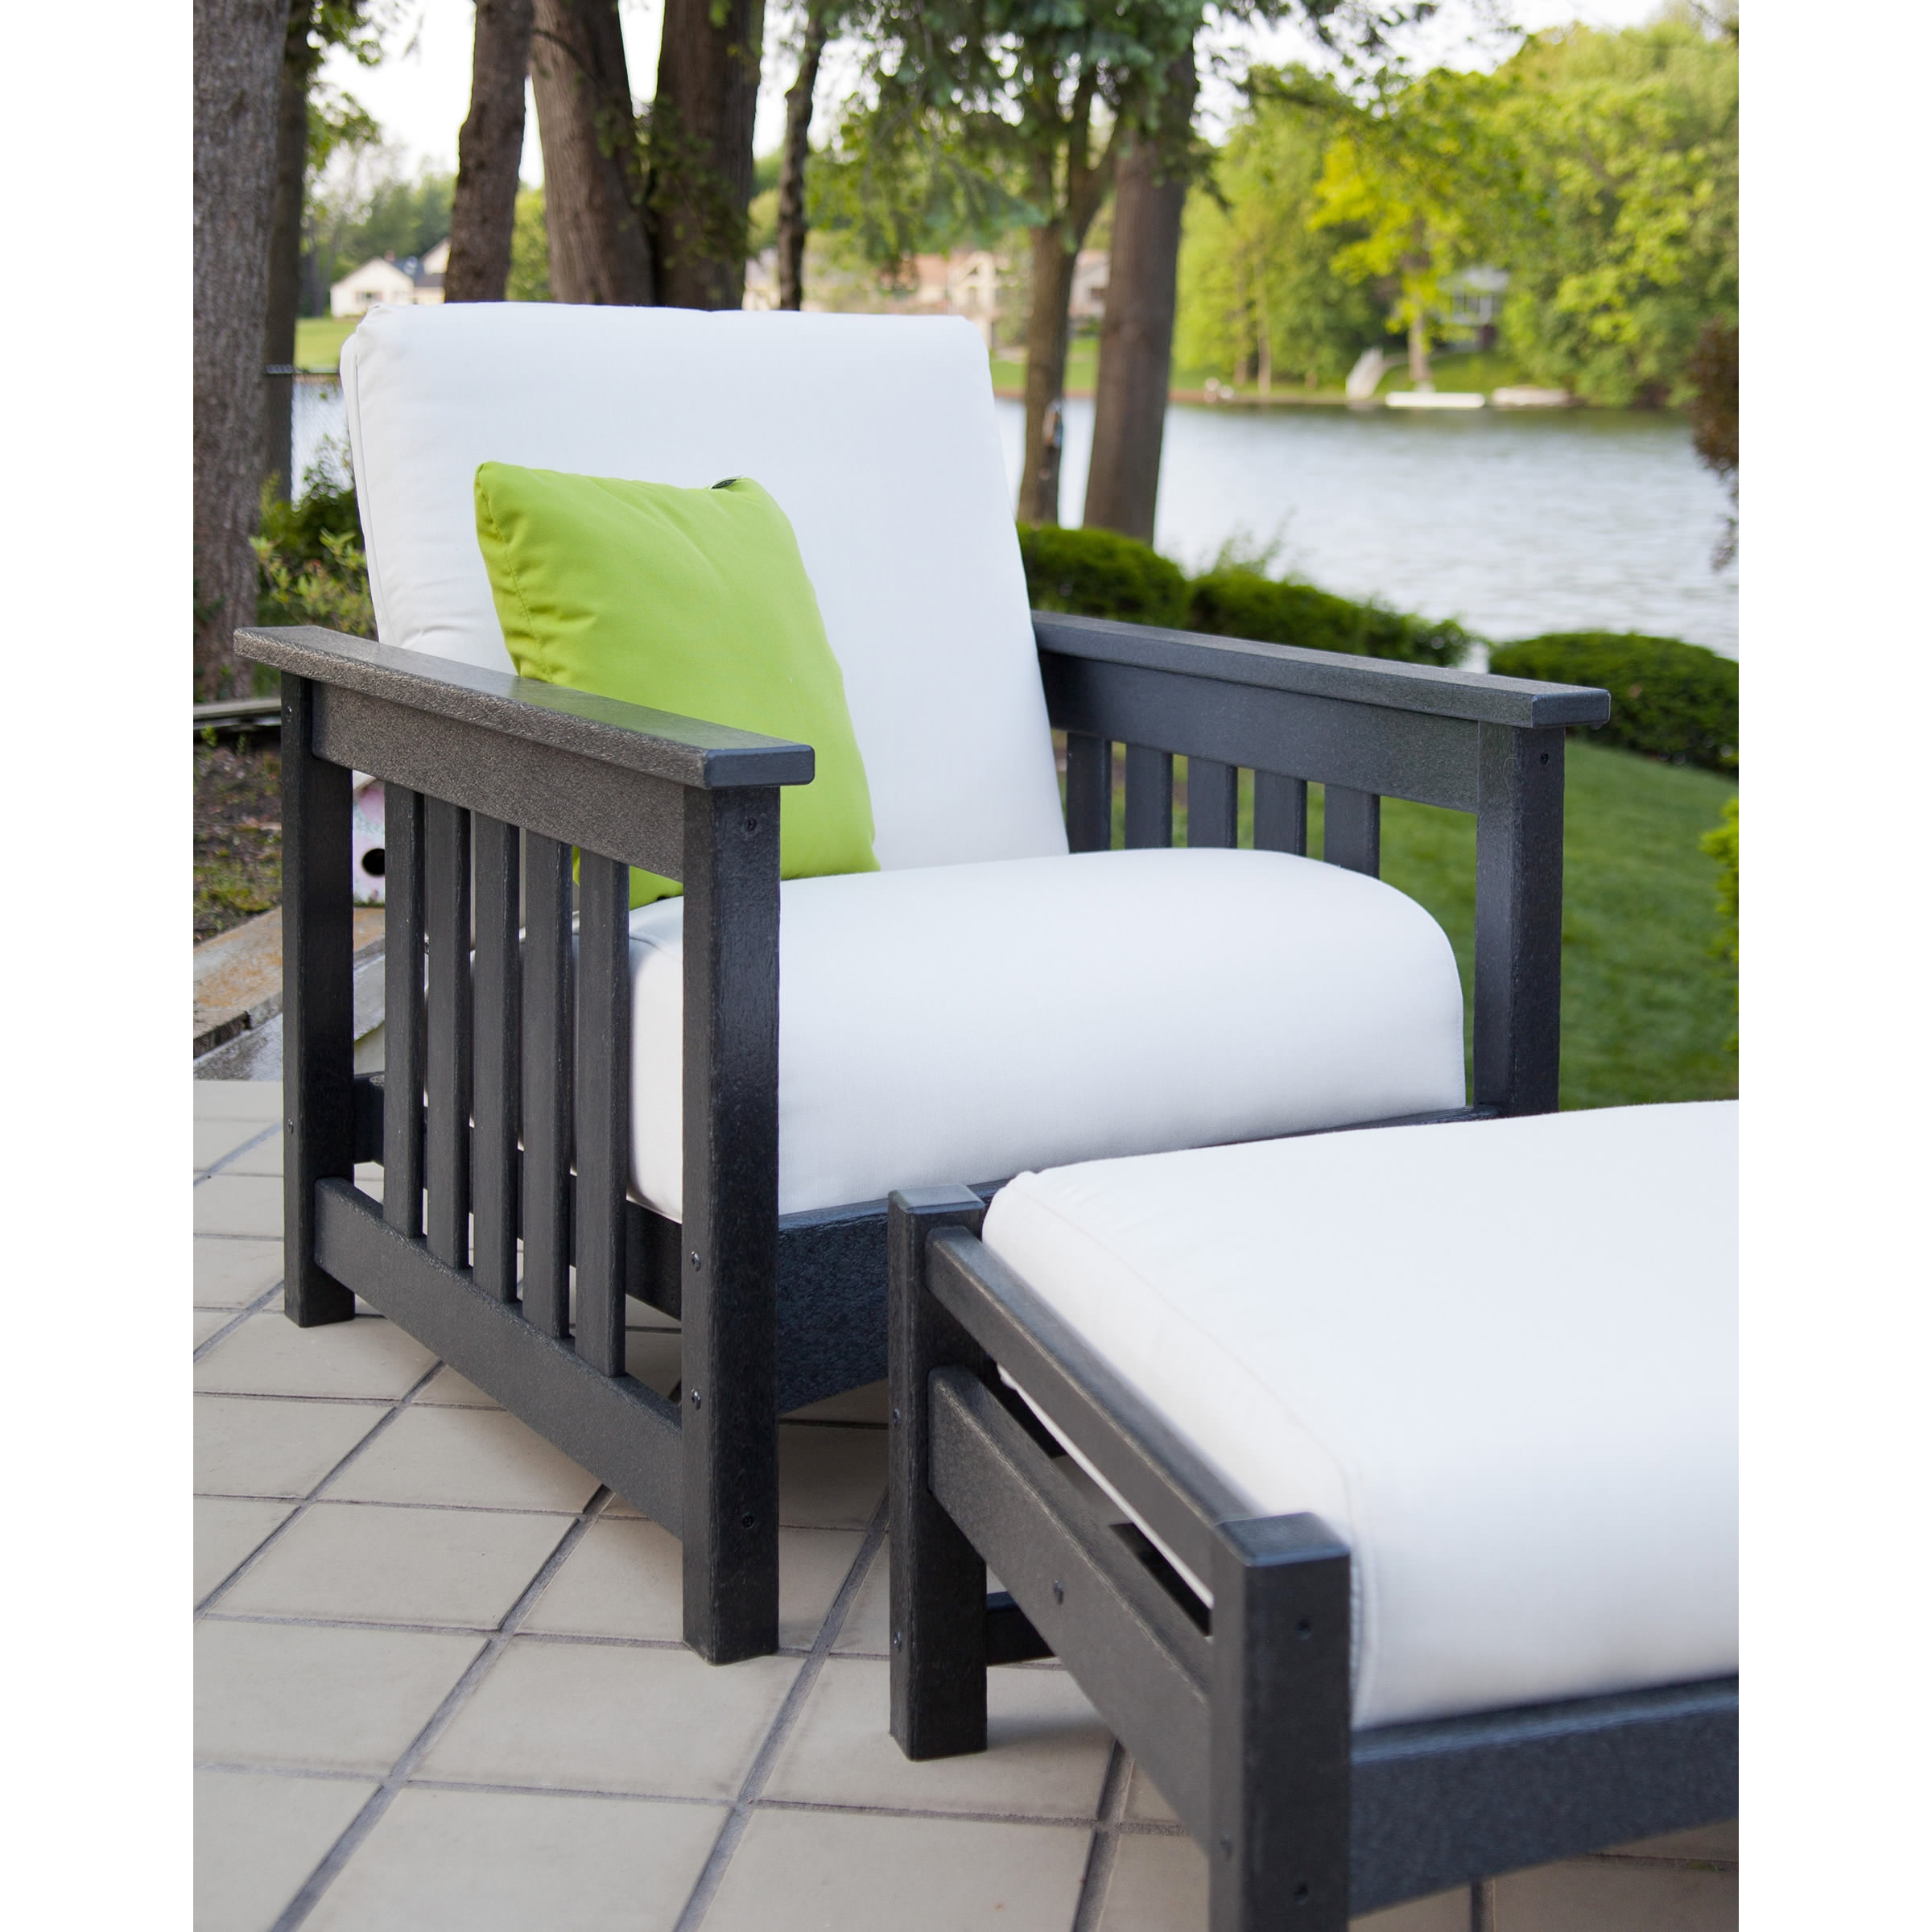 liquidation patio furniture costco outdoor chairs swing tulsa wicker with regard to size 2400 x 2400 - Liquidation Patio Furniture